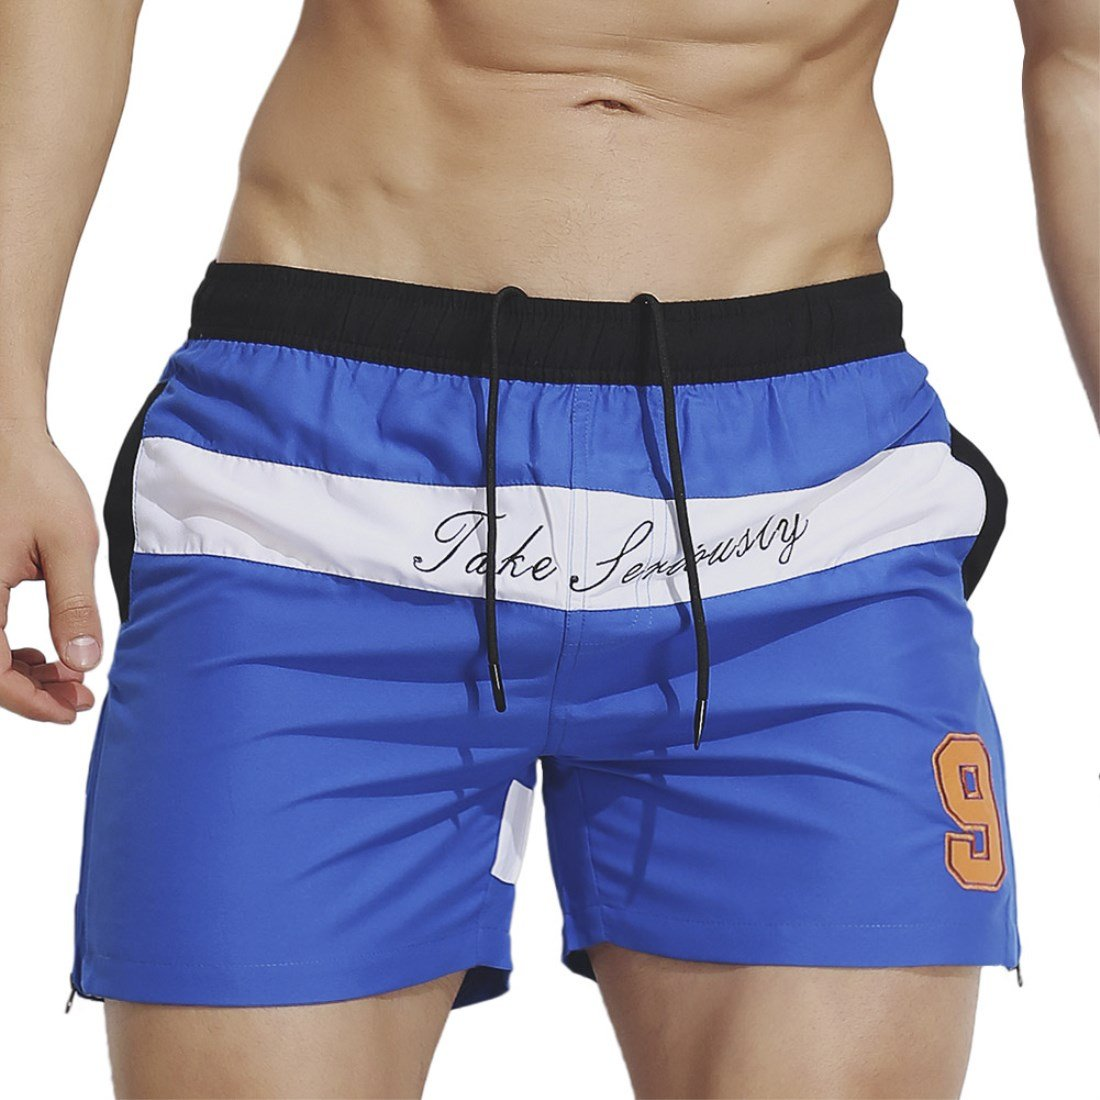 LJCCQ Mens Swim Trunks Broad Shorts Quick Dry Stripe Swim Shorts with Pockets Bathing Suits for Swimming Beach